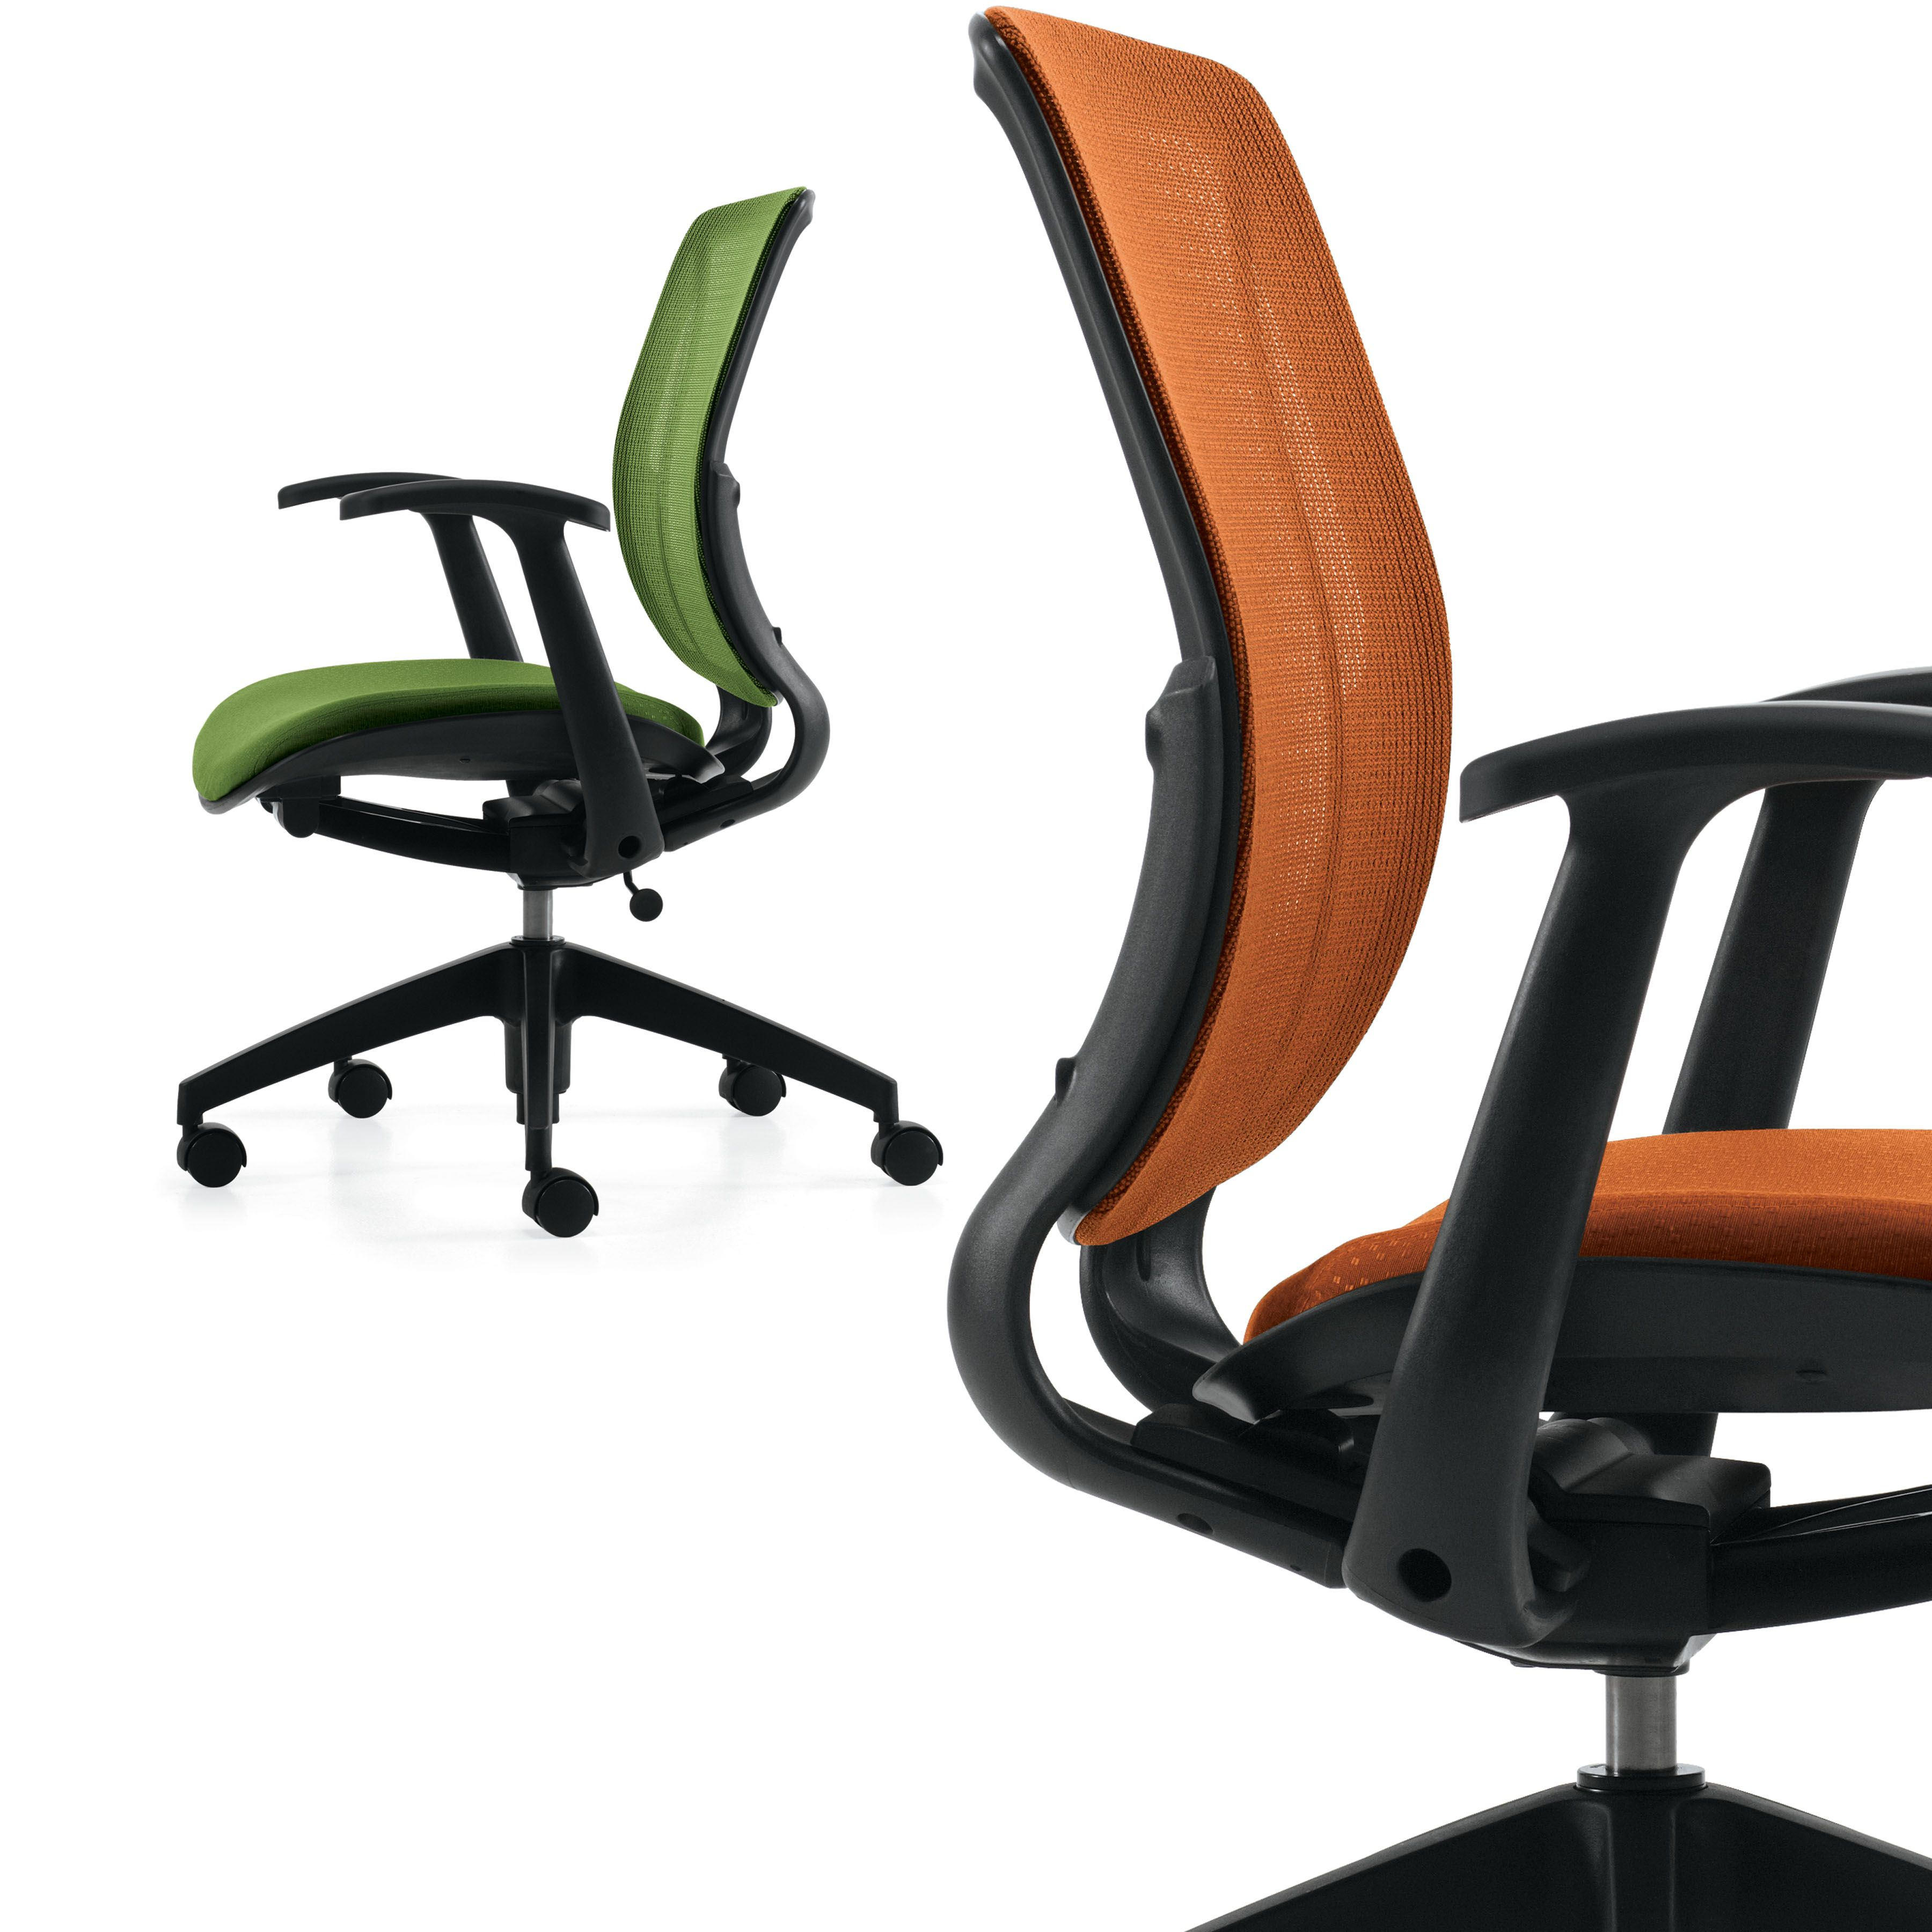 The #Roma Chair Is Ideal For #home, Or #office, And Comes